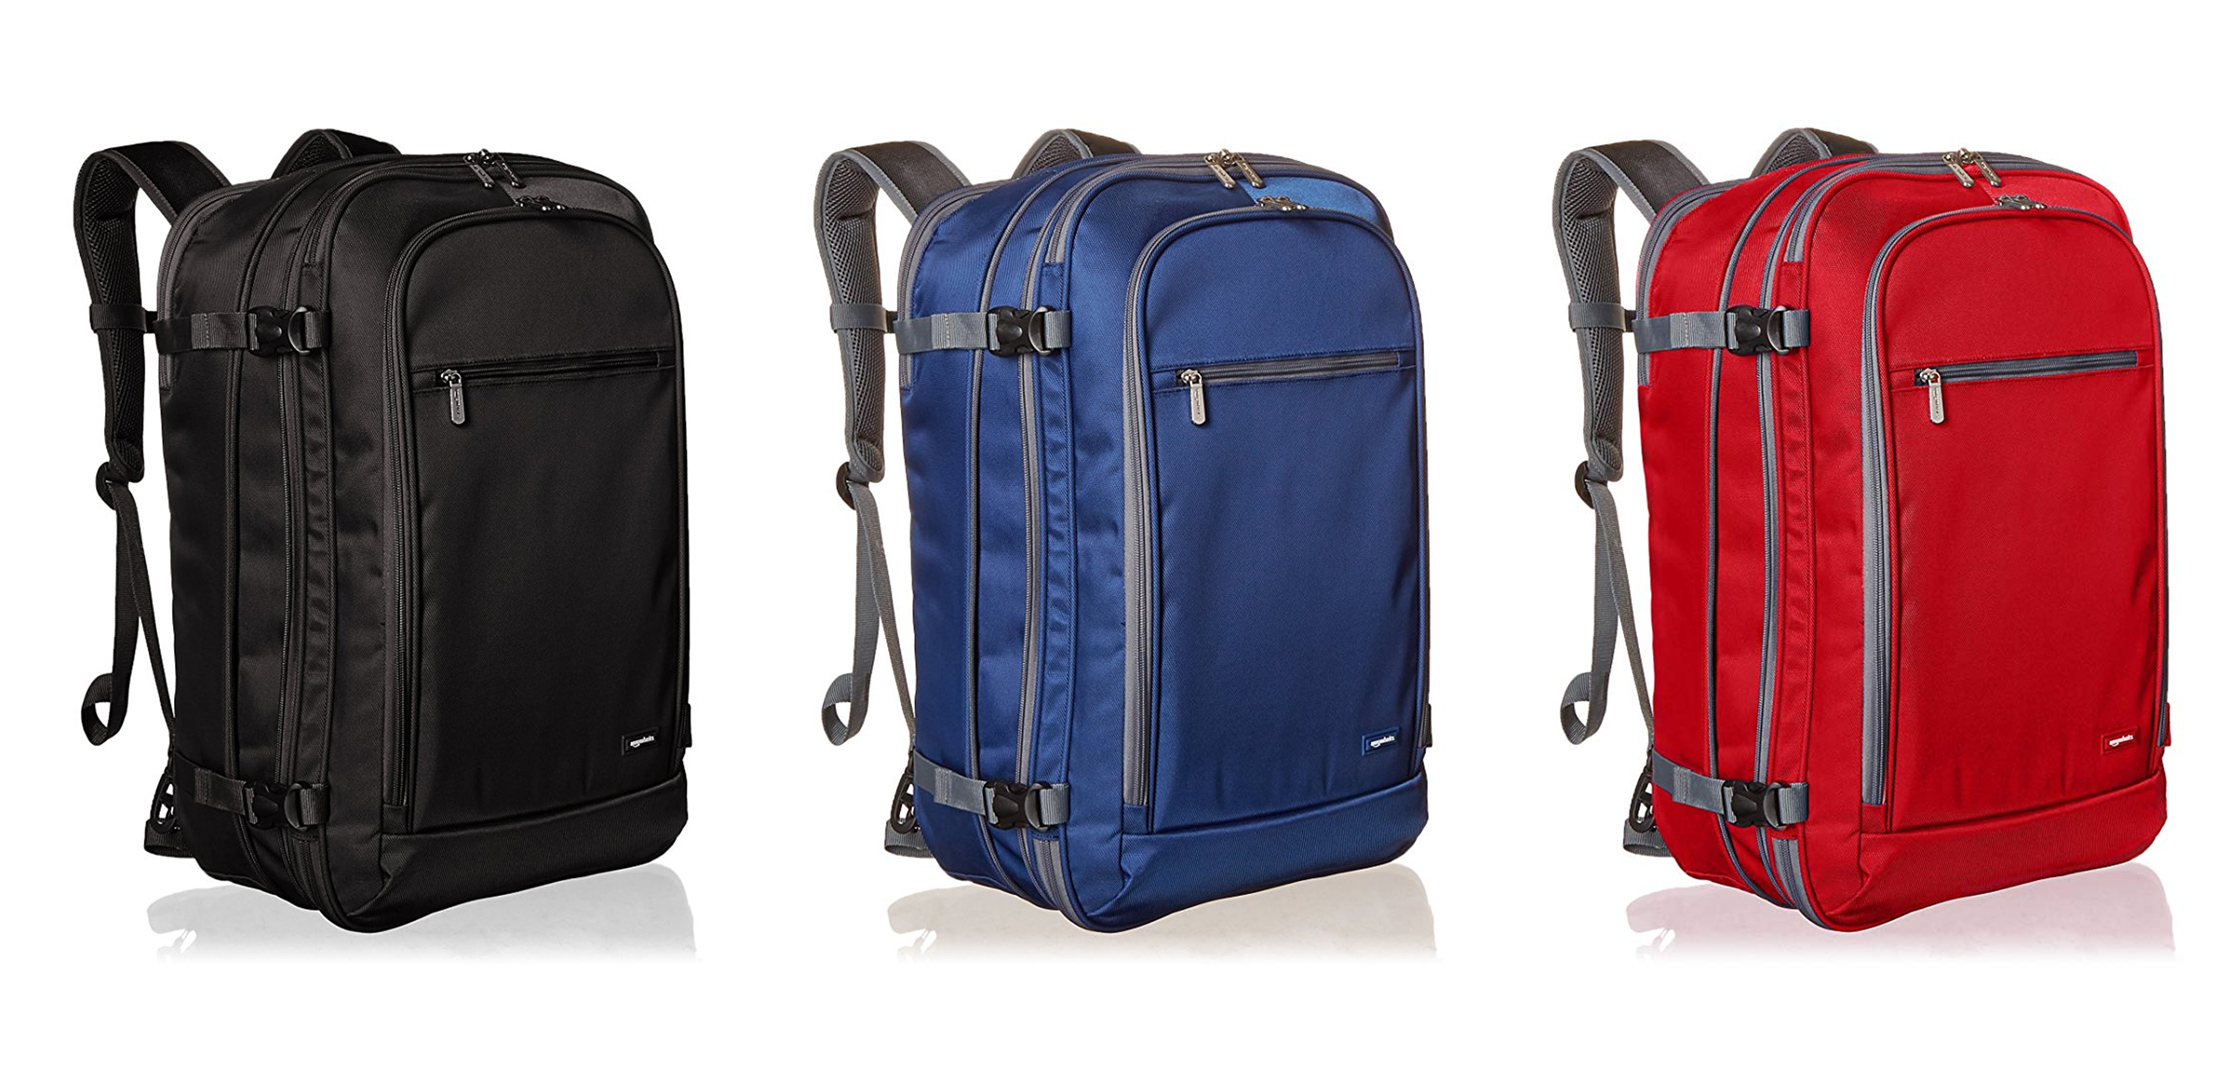 AmazonBasics Carry-On Travel Backpack Colors